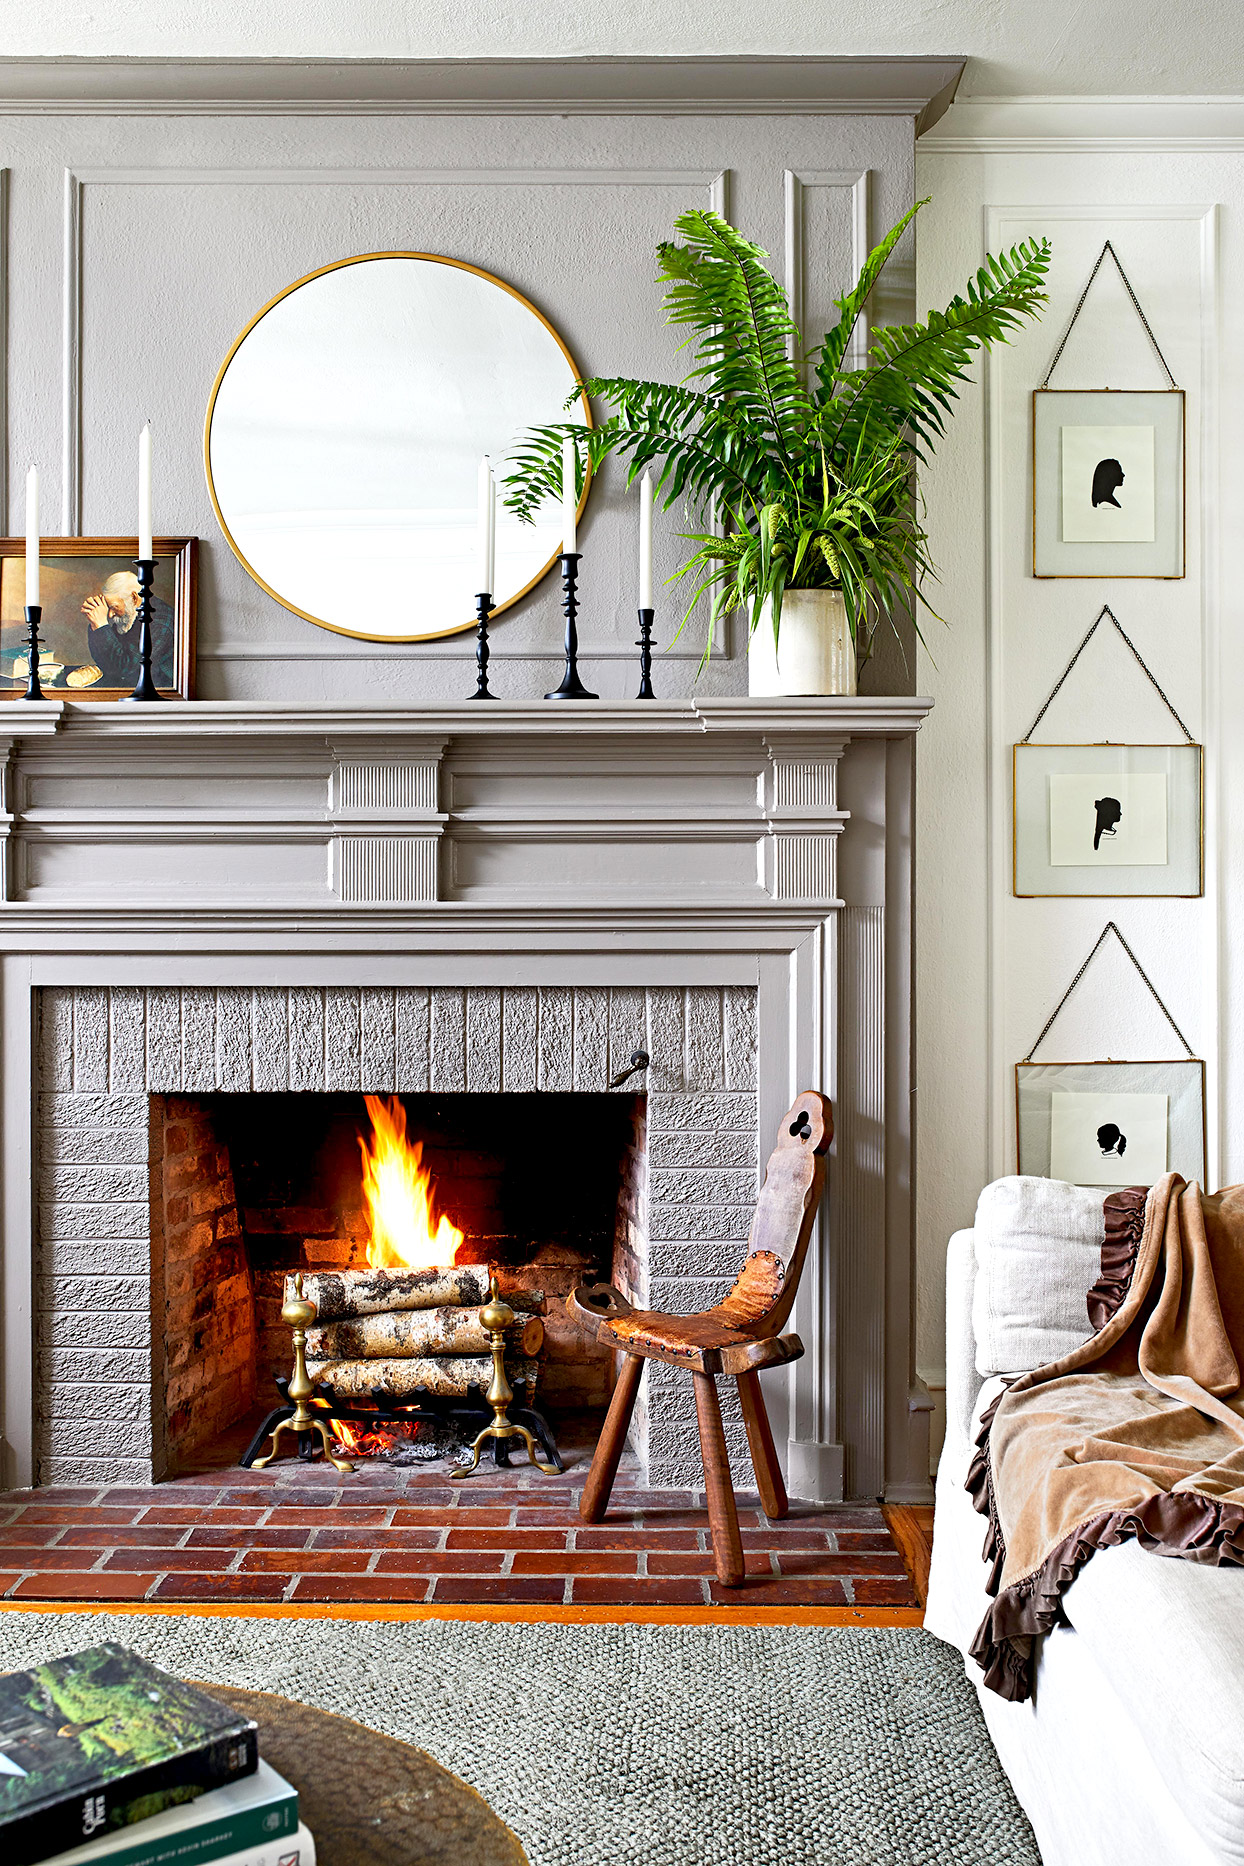 Fireplace with candles and plant